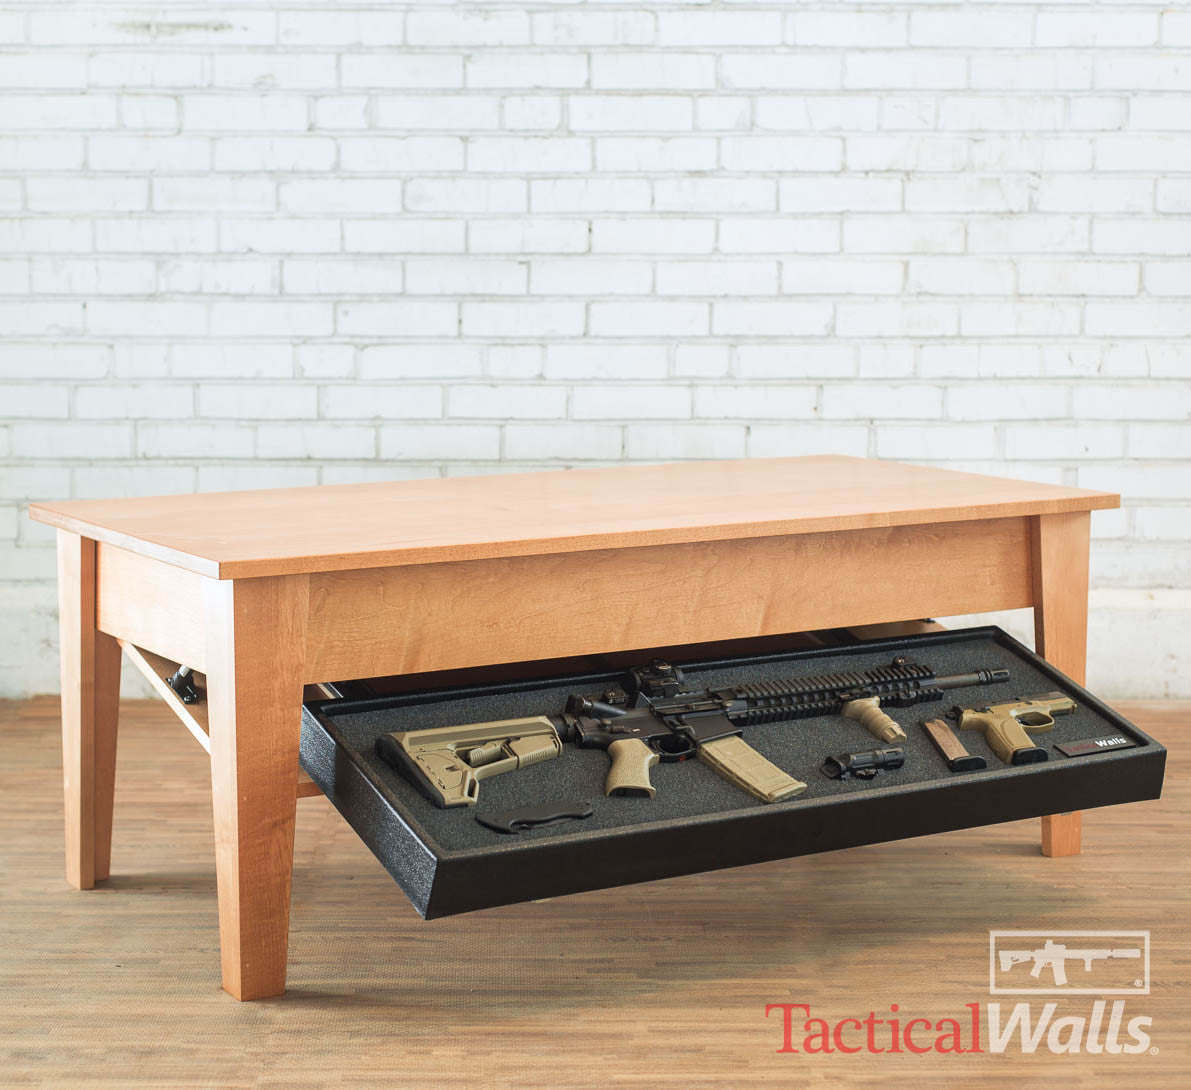 Pleasing Tactical Wall Coffee Table Rfid Onthecornerstone Fun Painted Chair Ideas Images Onthecornerstoneorg